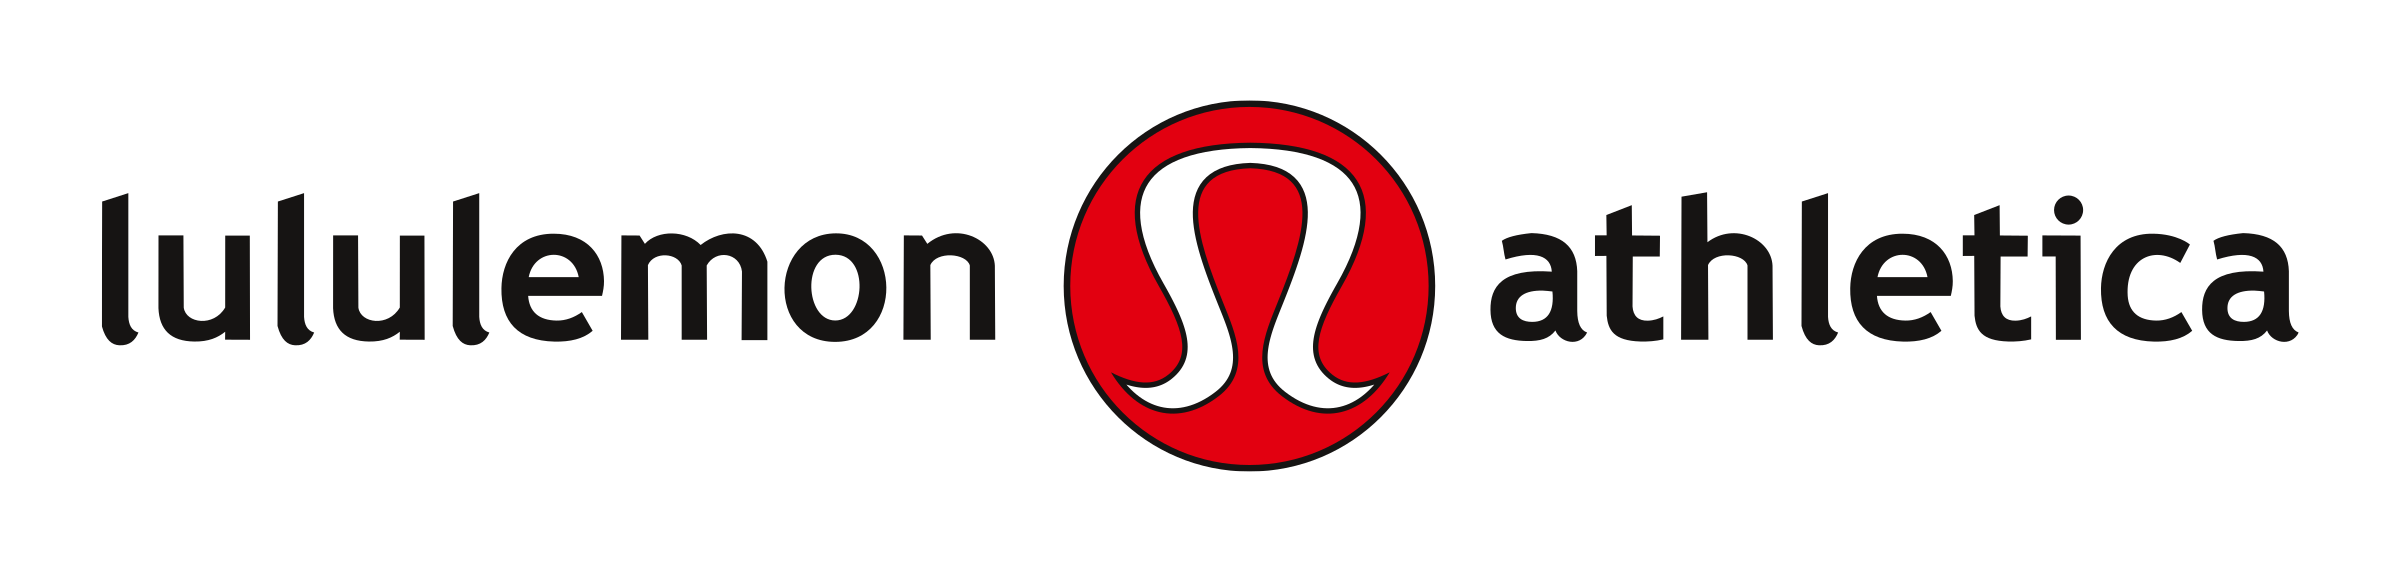 Athletic Apparel & Technical Clothing - Lululemon